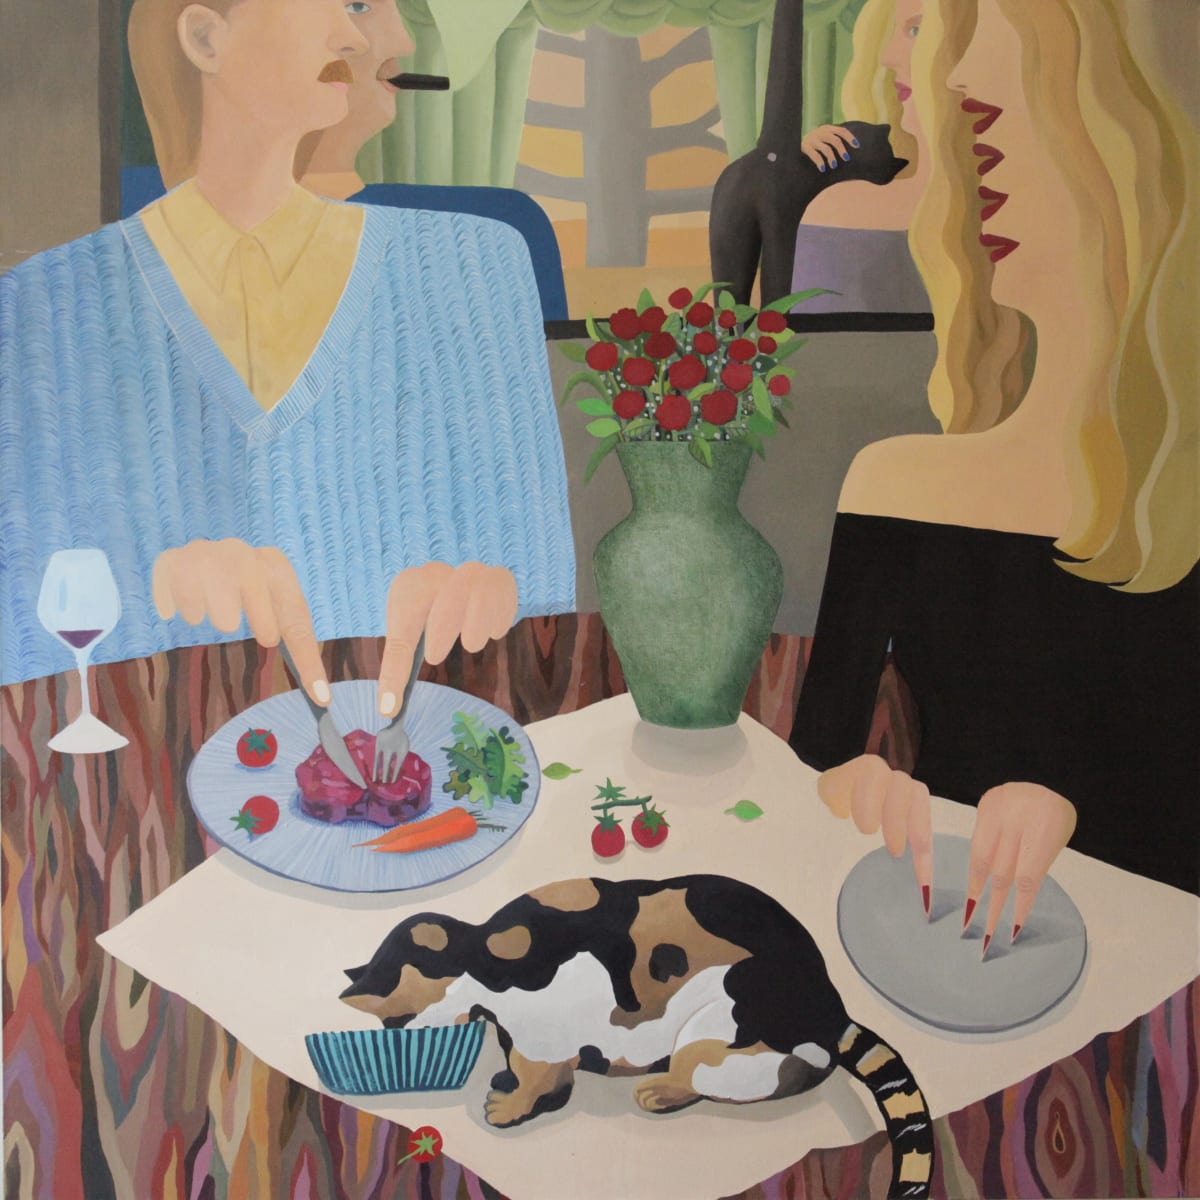 Valentine's Dinner , 2018 oil on canvas 152.4 x 152.4 cm. Courtesy of the Artist and Taymour Grahne